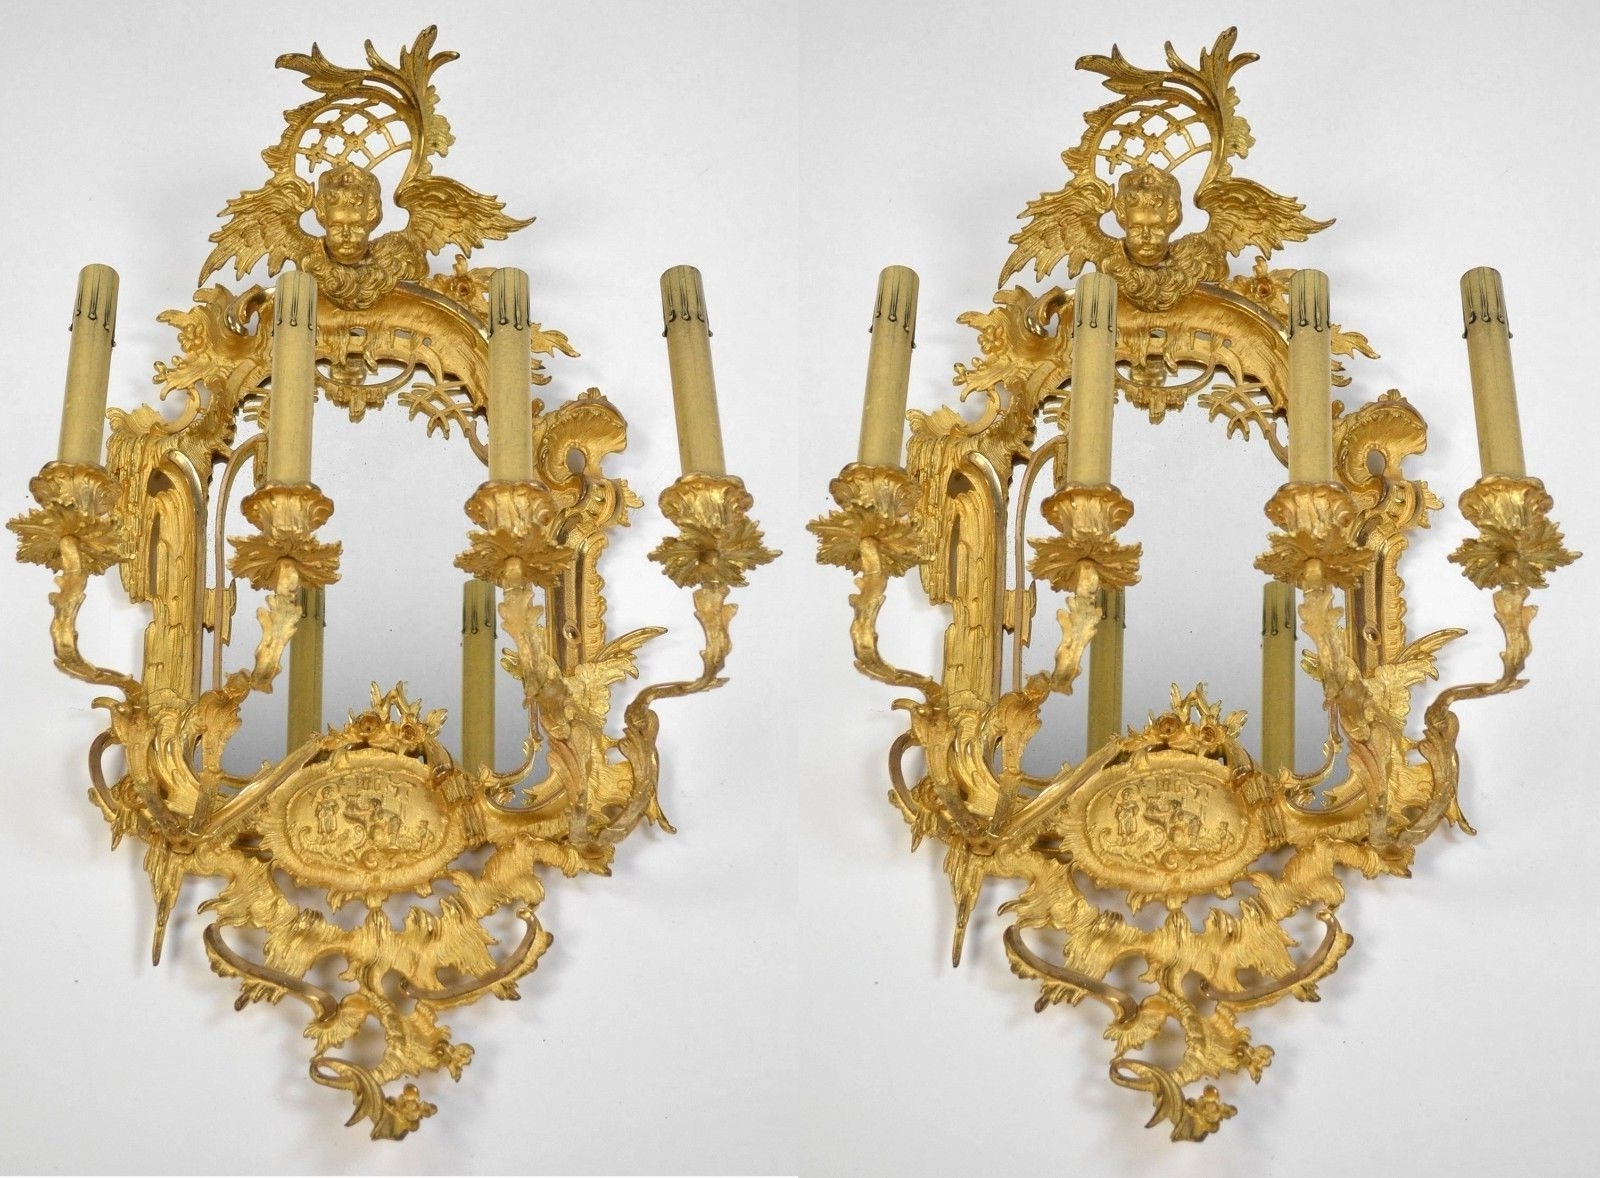 Trendy Large Pair French Rococo Mirrored Sconces C1880 Ornate Antique Wall Inside Ornate Chandeliers (View 20 of 20)